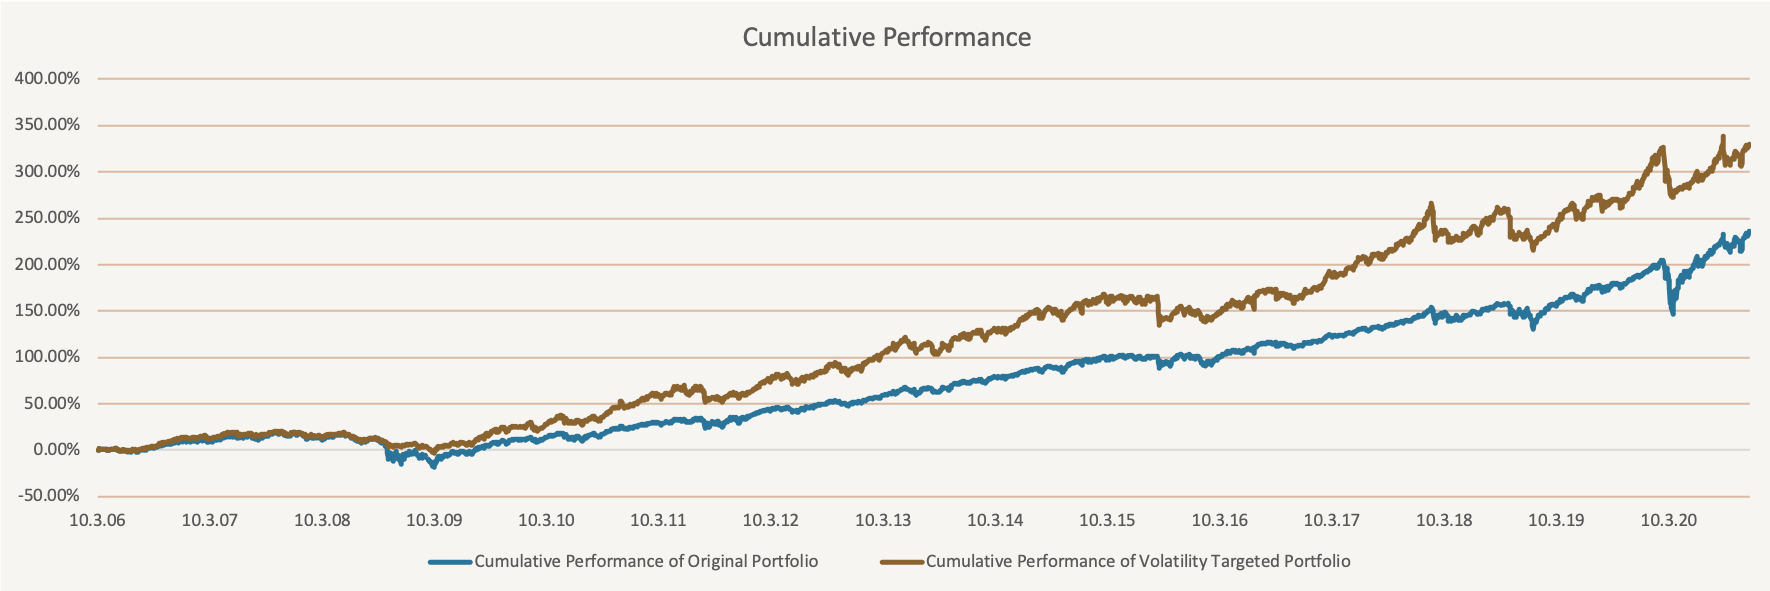 Simple volatility targeting - equity curves